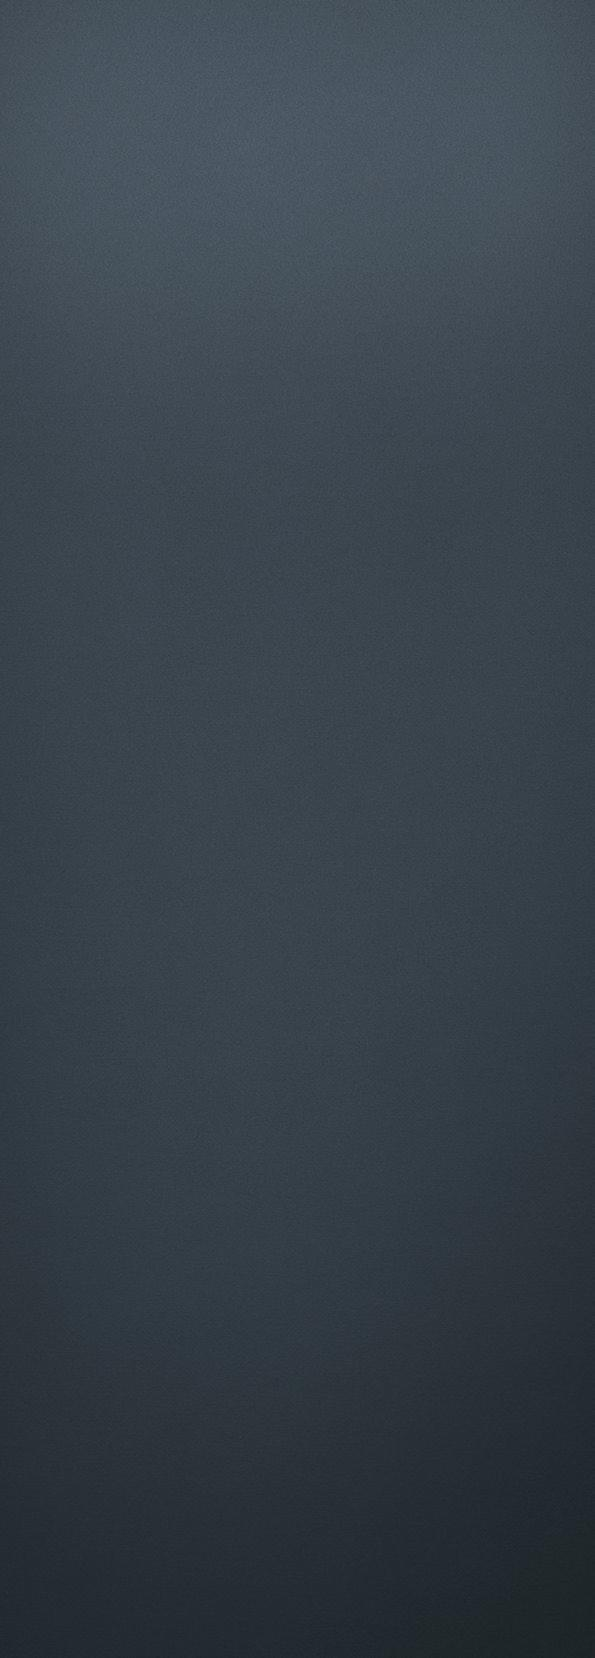 Highlights Efficient testing of charging technology The Scienlab ChargingDiscoverySystem (CDS) can be combined with the Dynamic DC Emulator (DCE) for emulating any electric vehicle or a universal DC